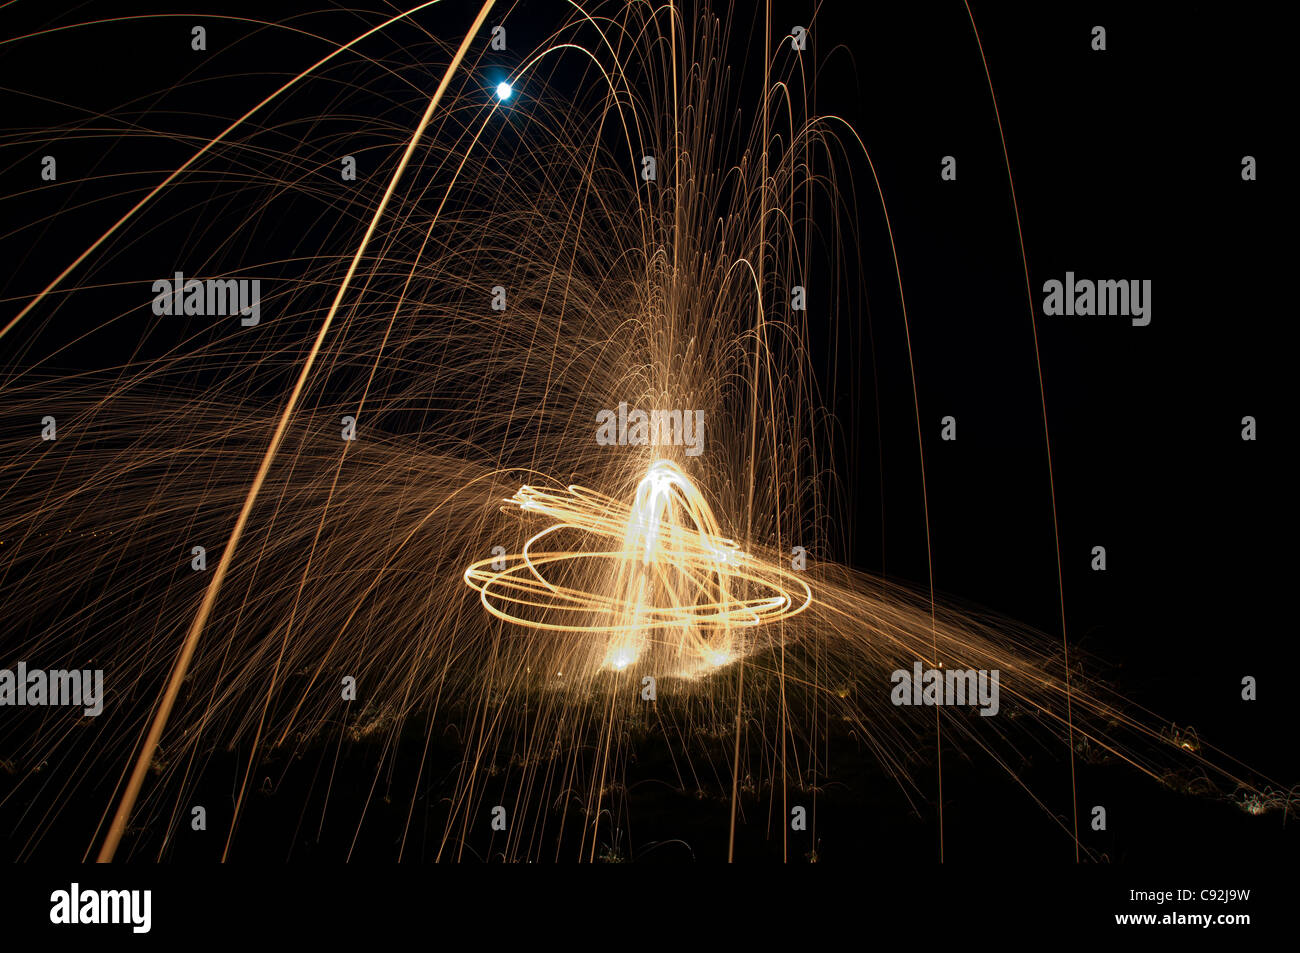 Steel wool spinning, creating gorgeous circular streaks of golden light from burning wire wool inside a whisk attached to wire, or rope. Stock Photo